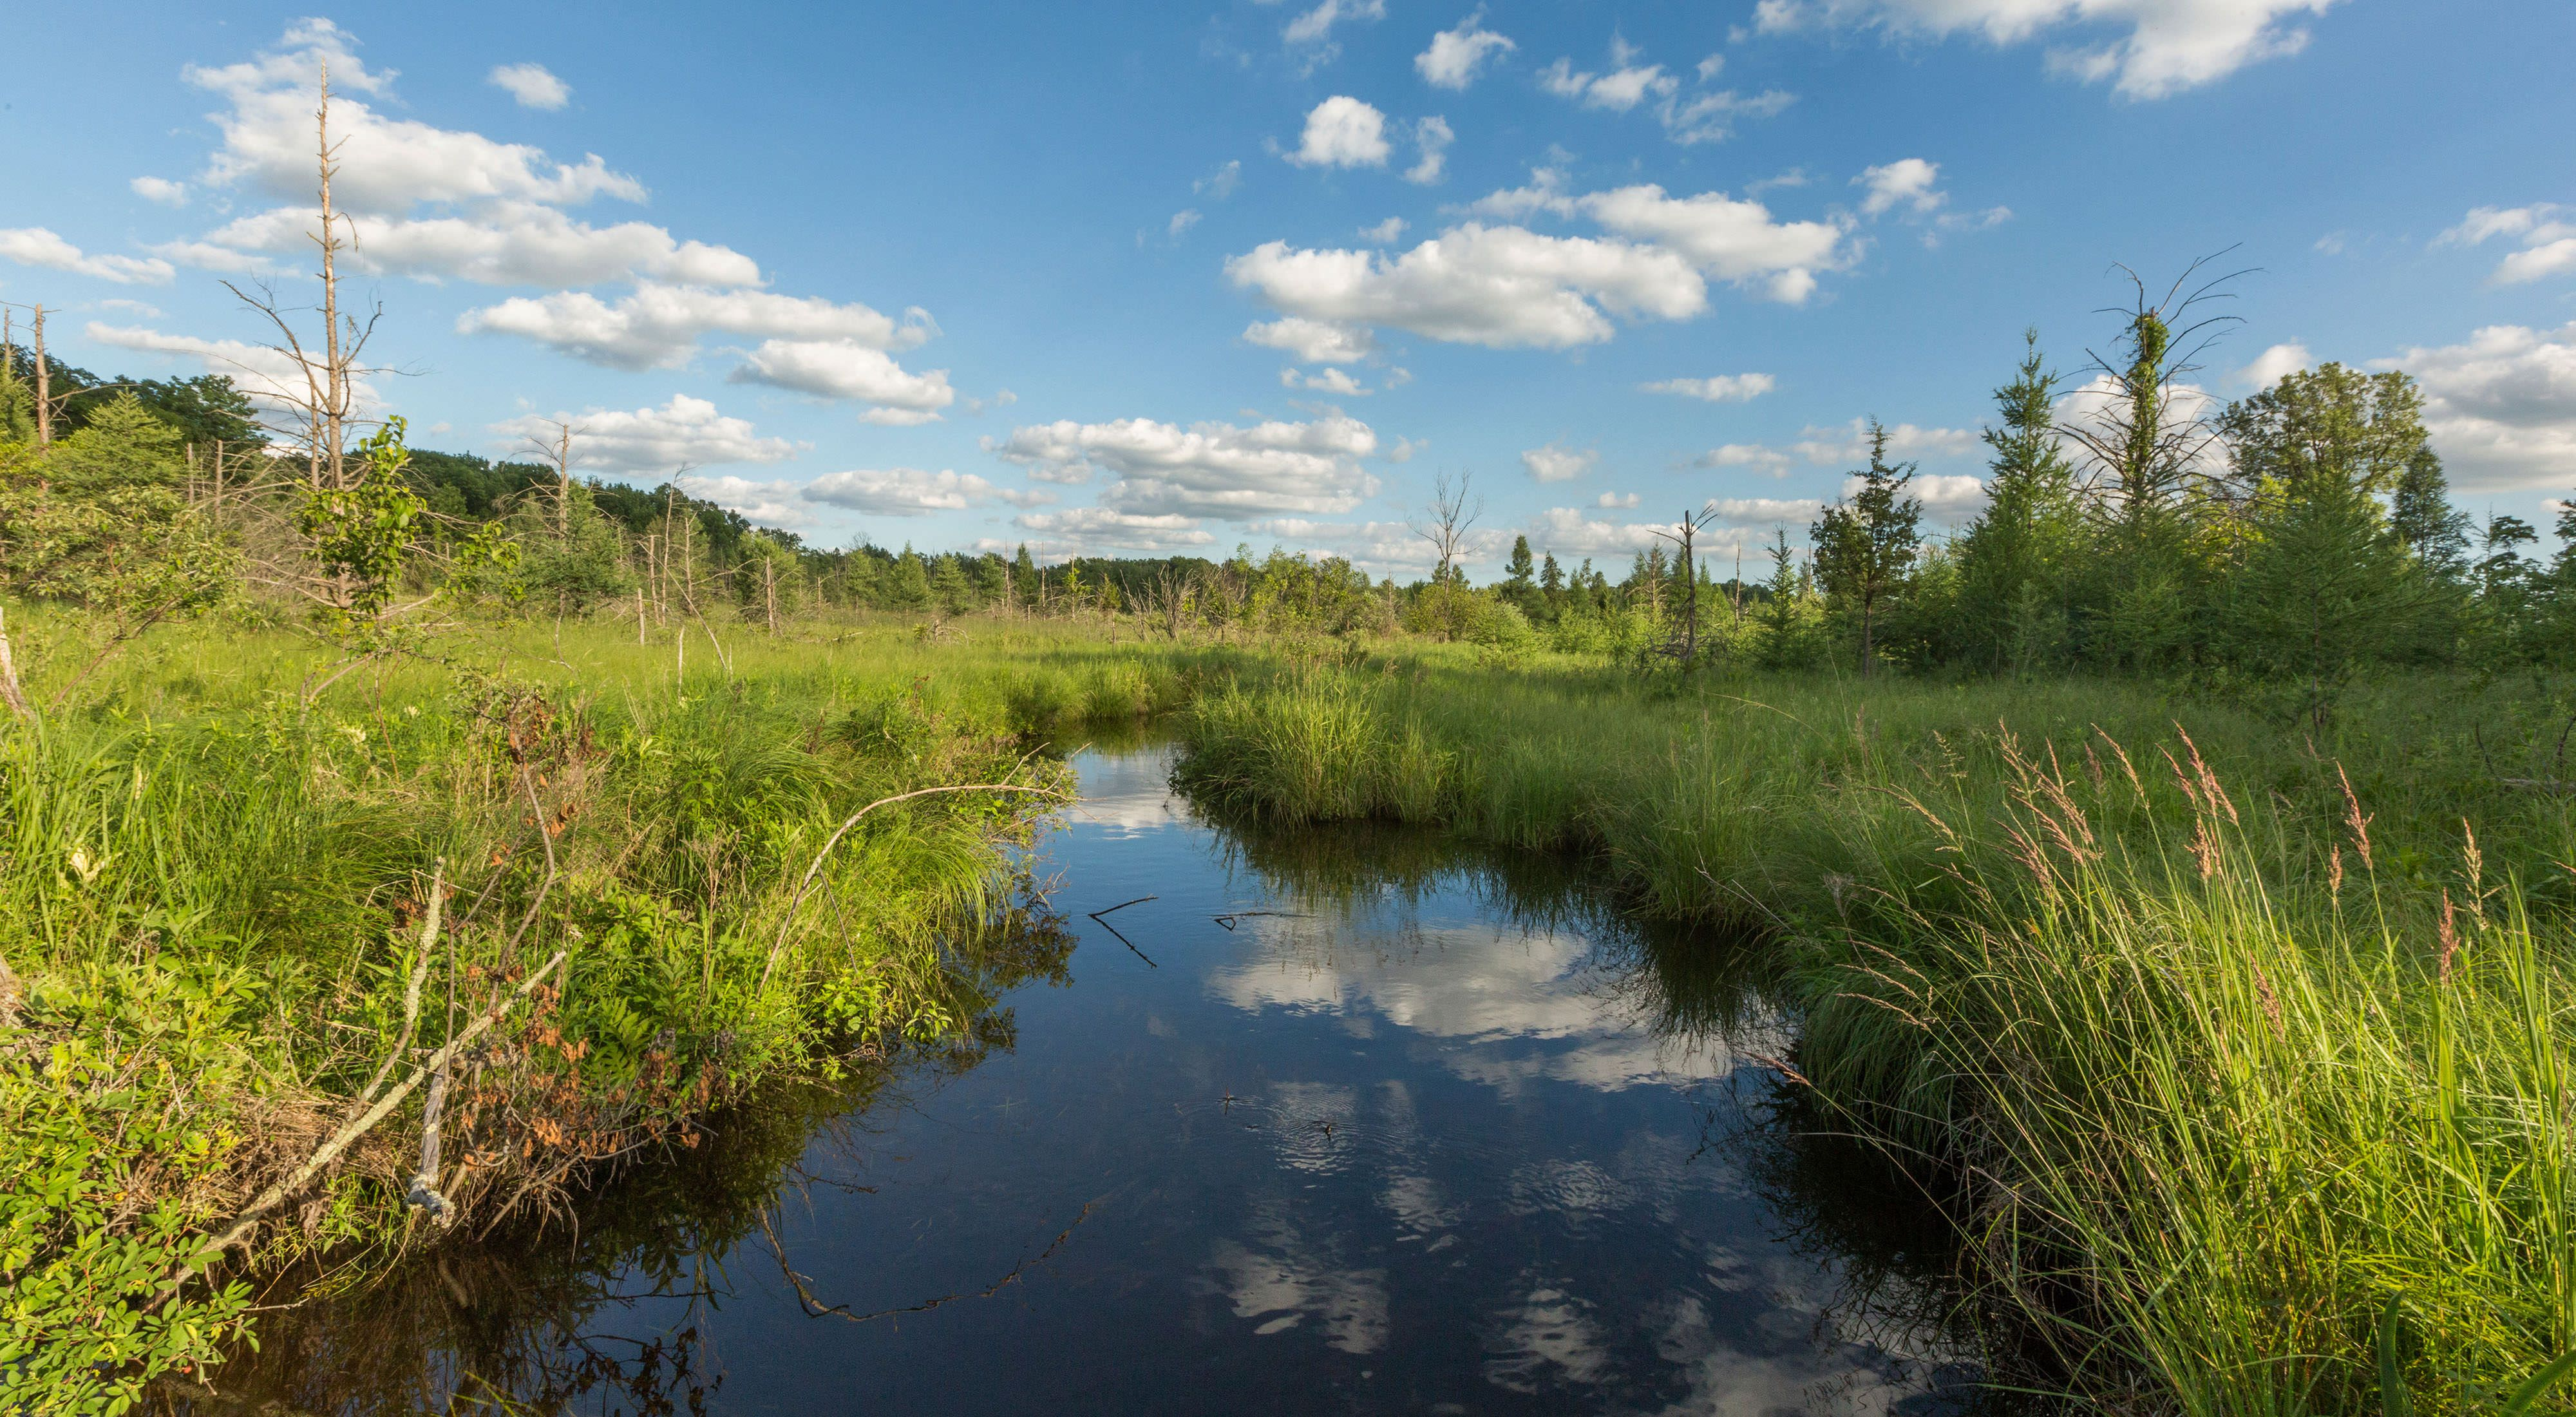 Grand River Fen Preserve is home to the longest river in the state of Michigan, the Grand River.